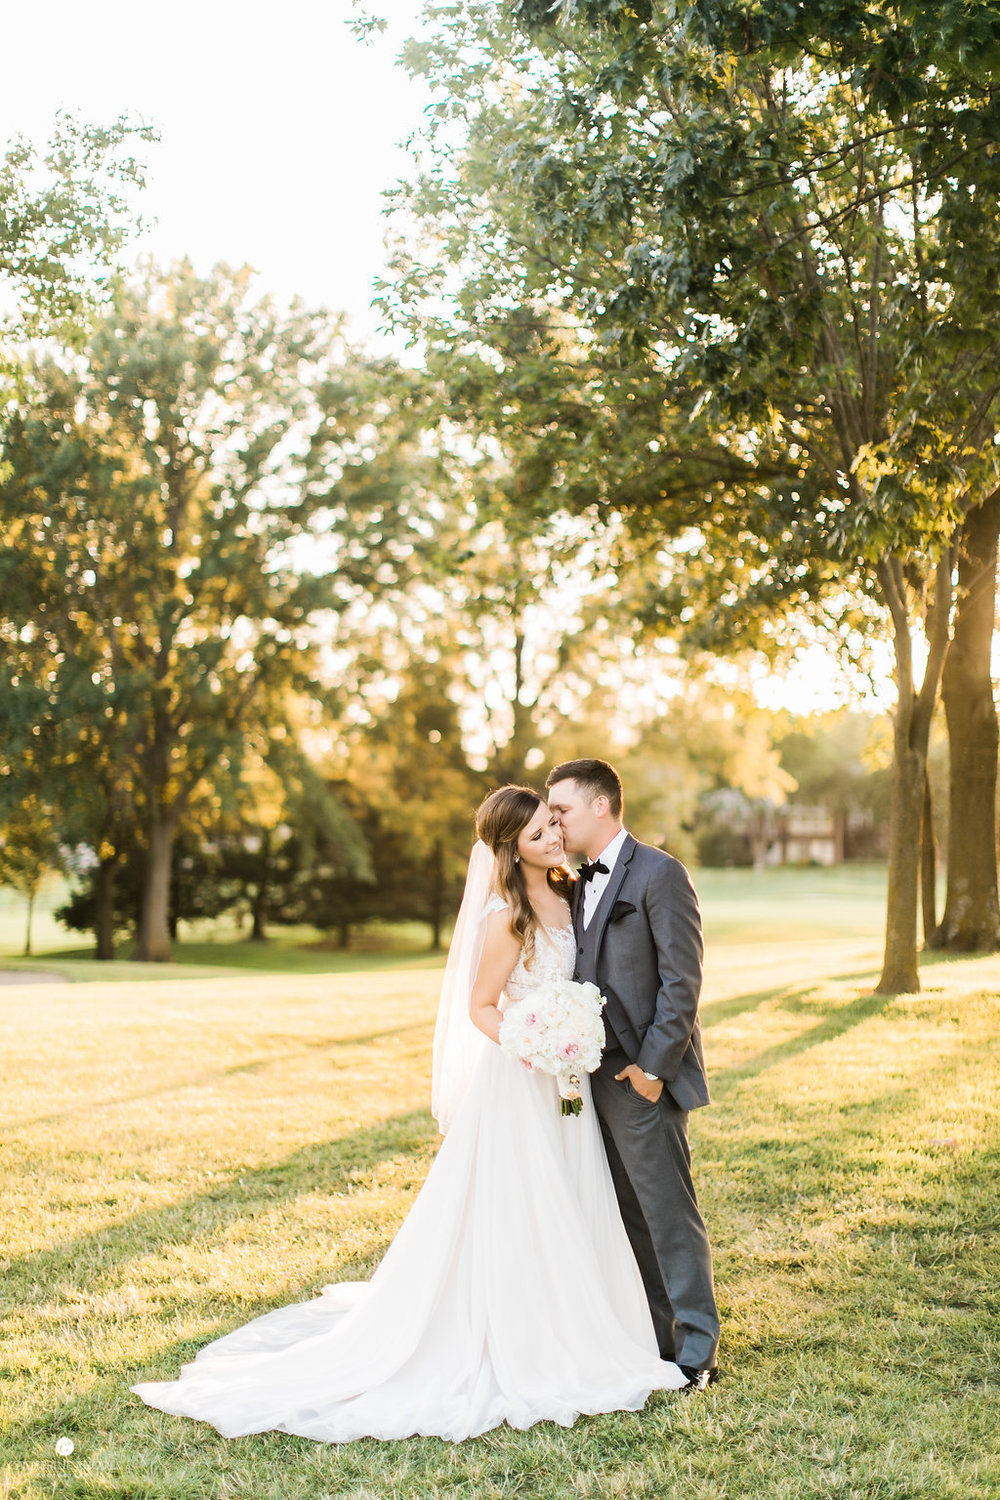 CountryClubofMissouriWedding_AnnaDrew_Portraits_CatherineRhodesPhotography(252of332)-Edit.jpg